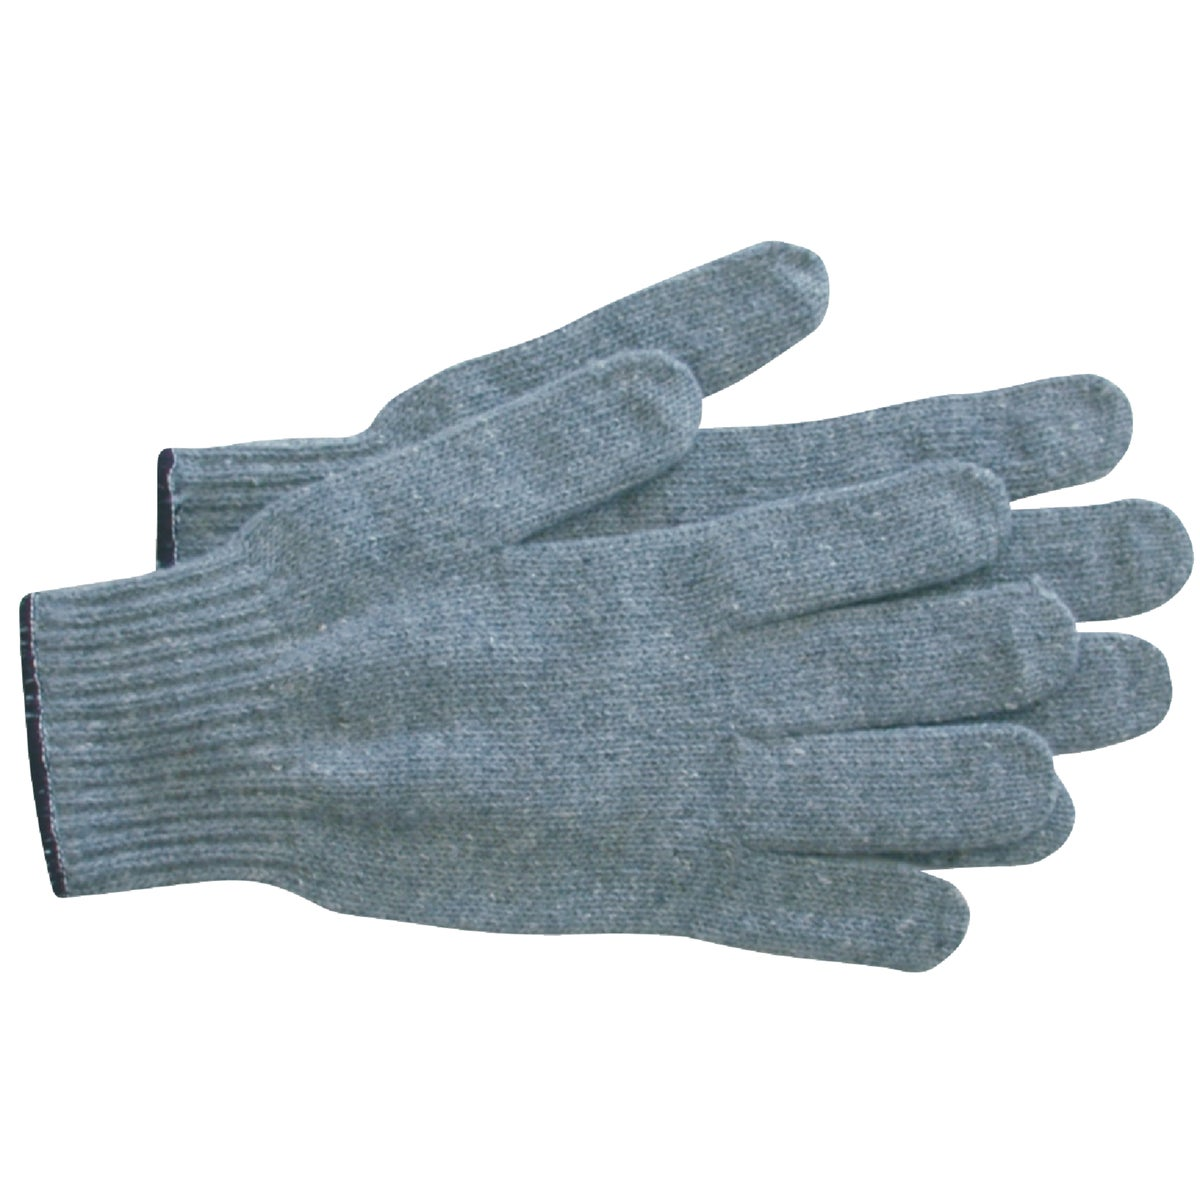 GRAY STRING KNIT GLOVE